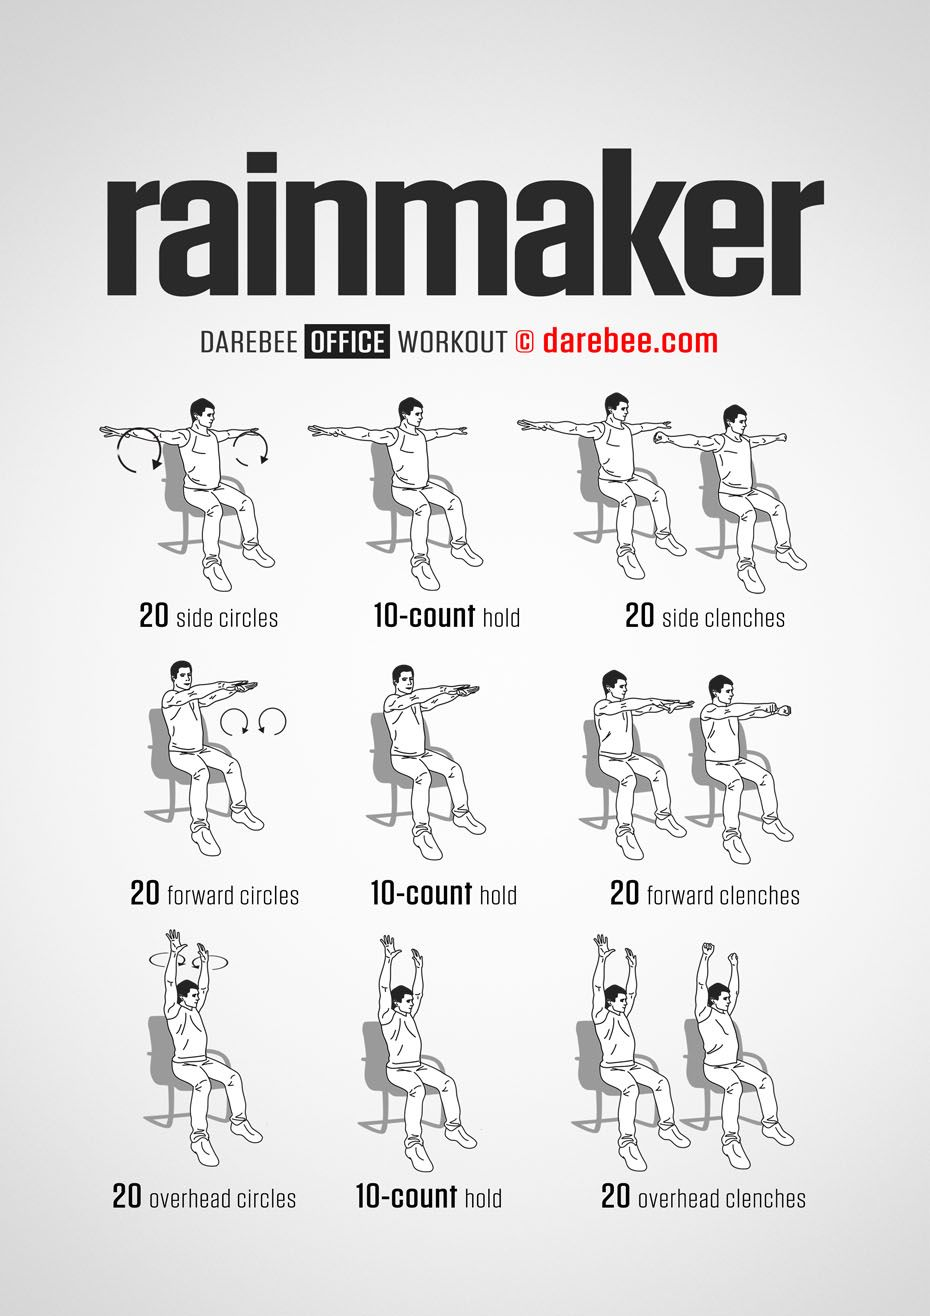 Rainmaker Workout Workout at work, Office exercise